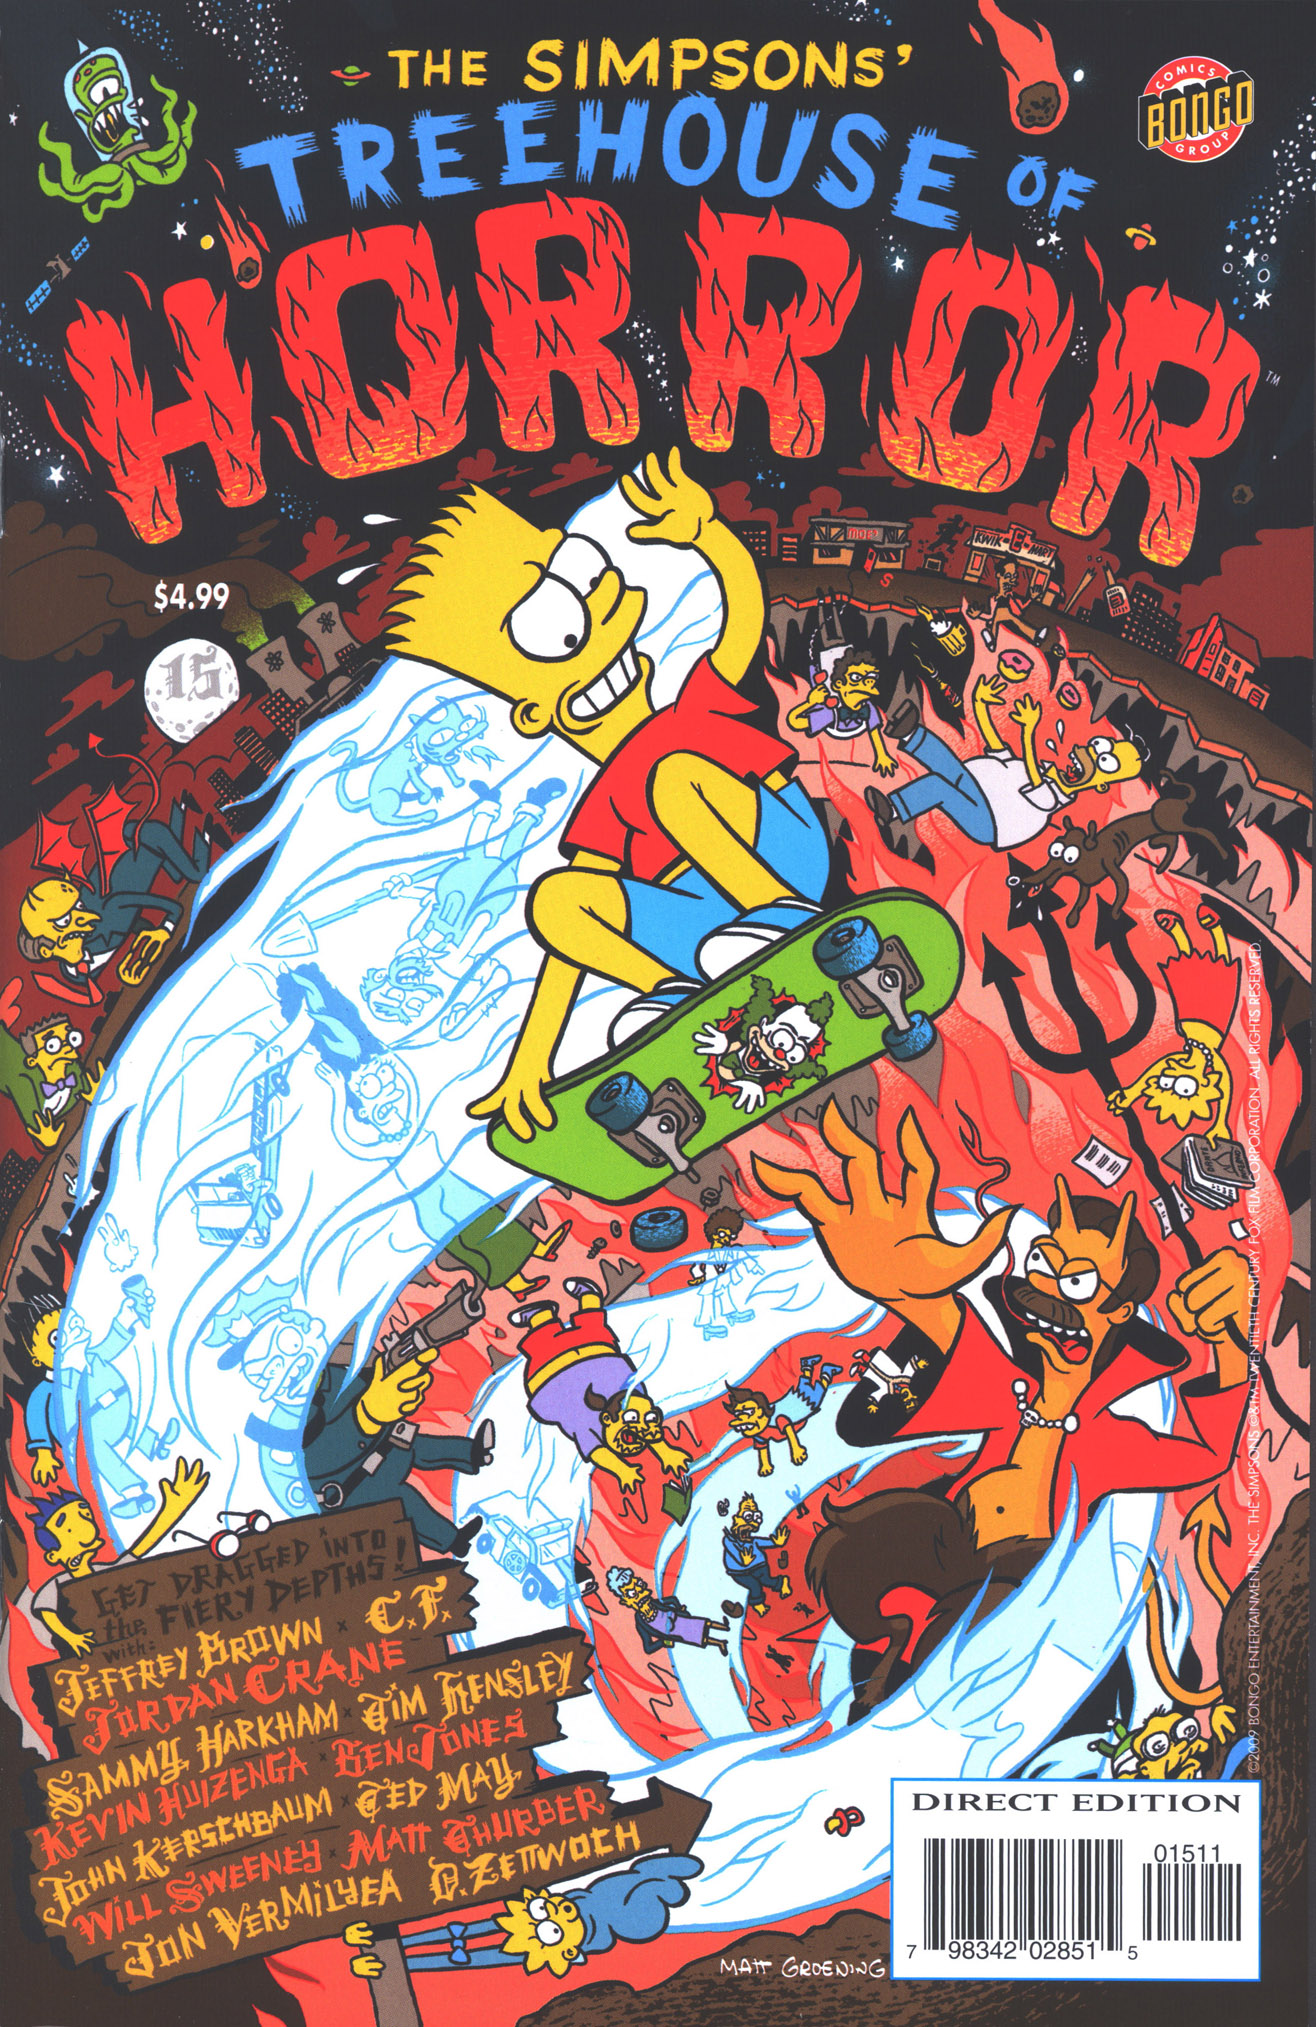 Read online Treehouse of Horror comic -  Issue #15 - 2